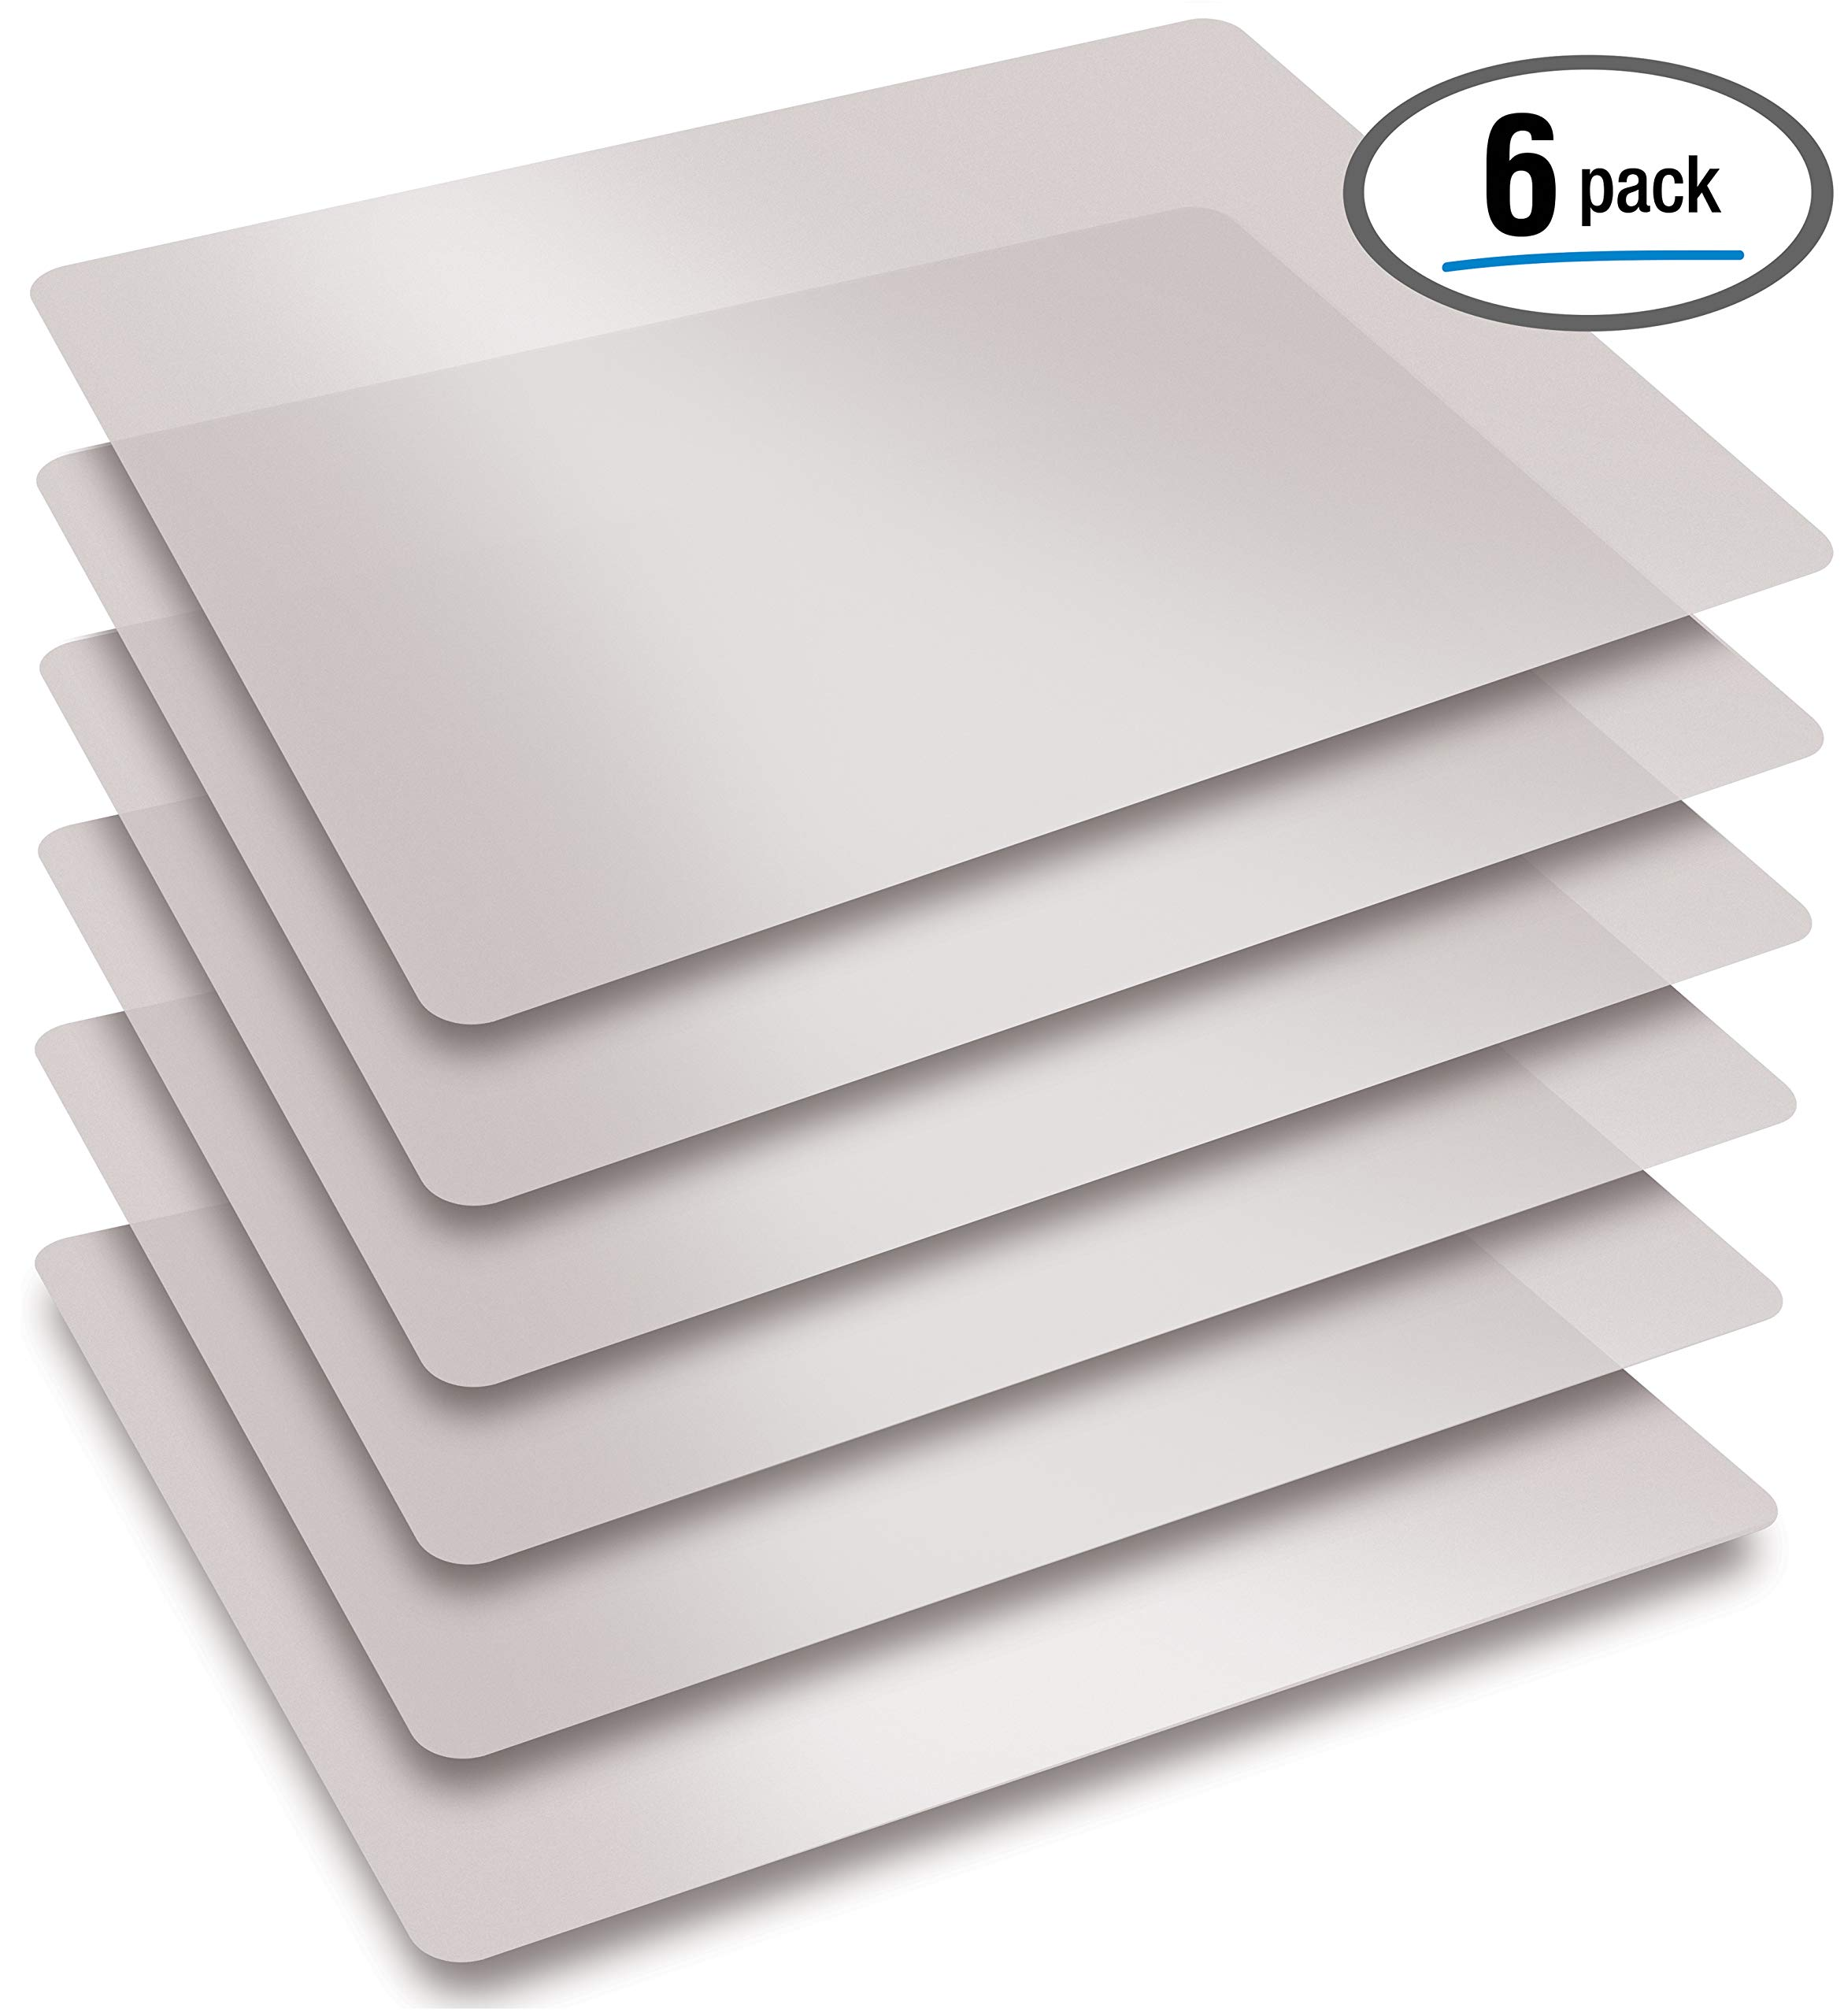 Extra Thick Flexible Frosted Clear Plastic Cutting Mats, Set of 6, by Better Kitchen Products by Better Kitchen Products